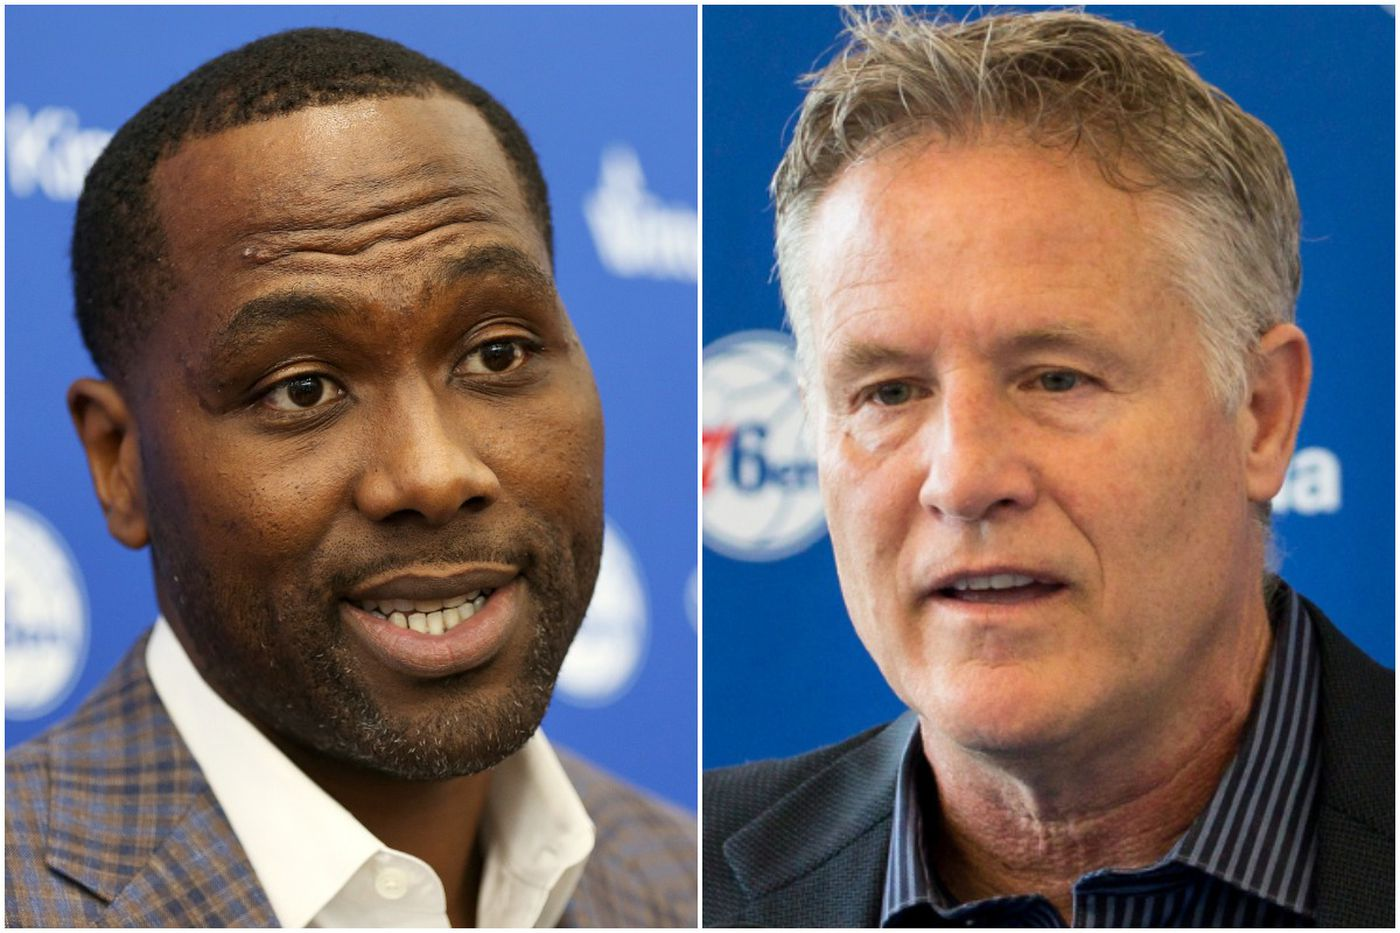 With Elton Brand in place as GM, Sixers' power structure is still undefined